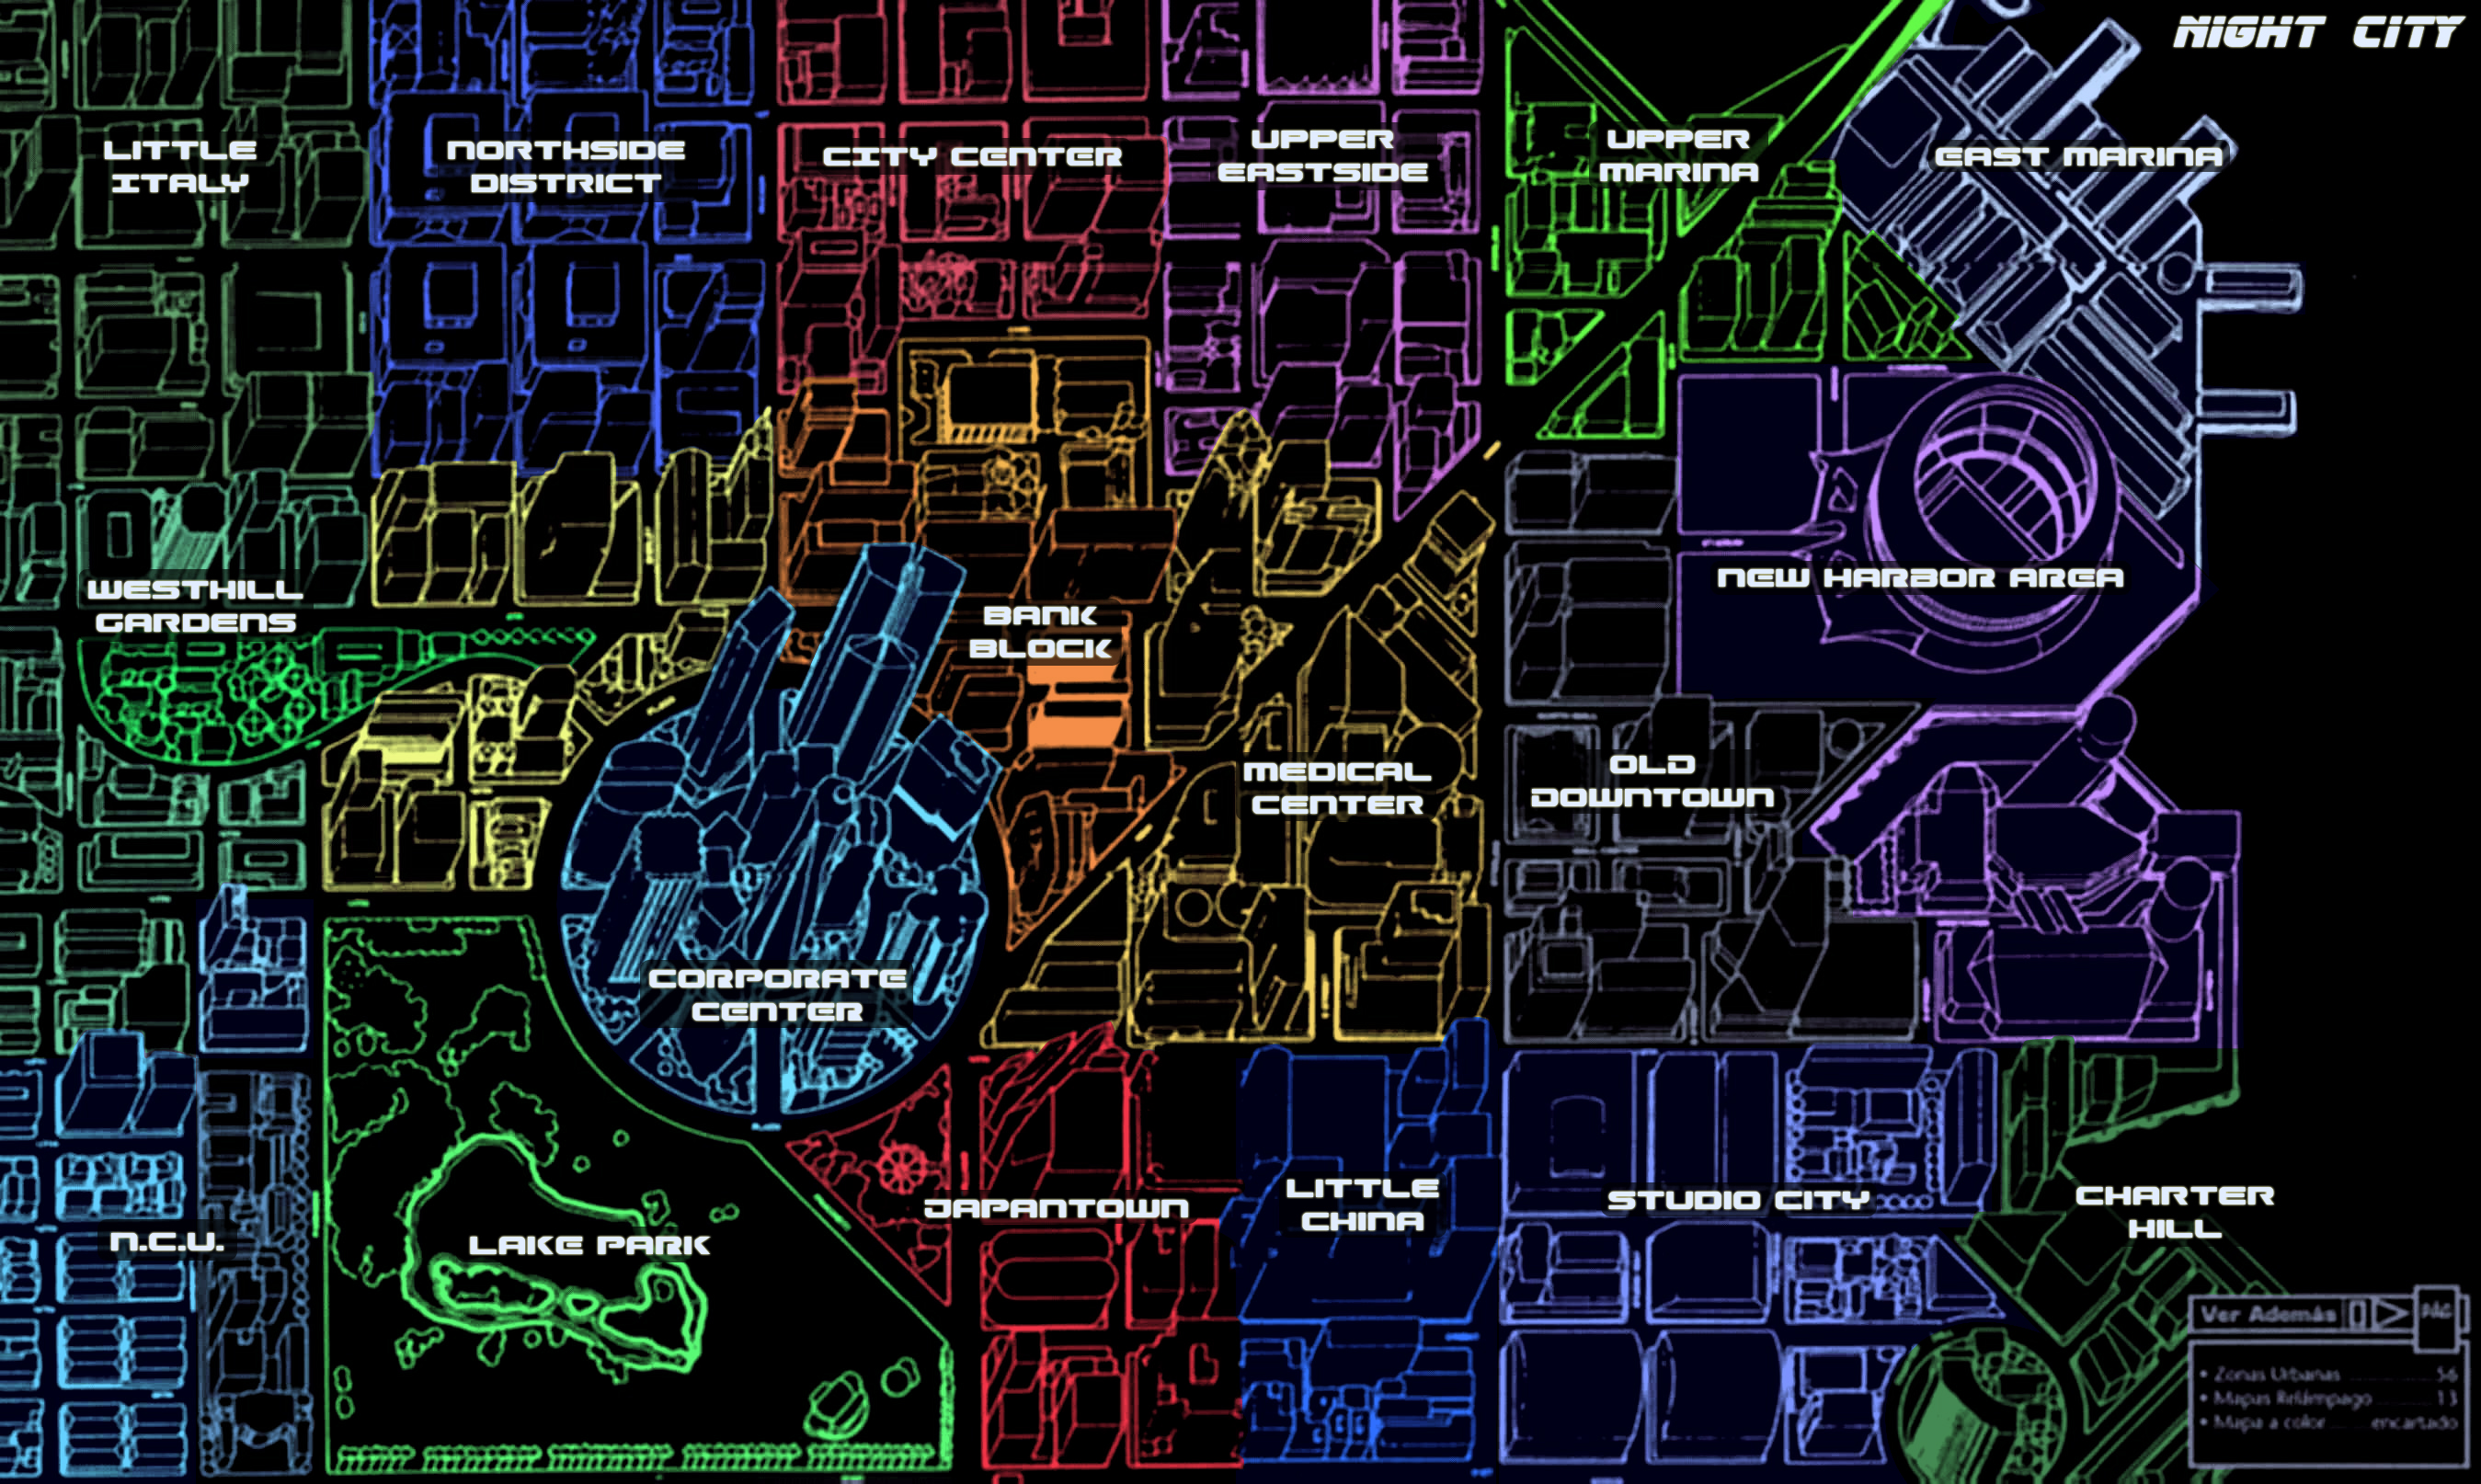 Night City map and districts. : cyberpunkgame